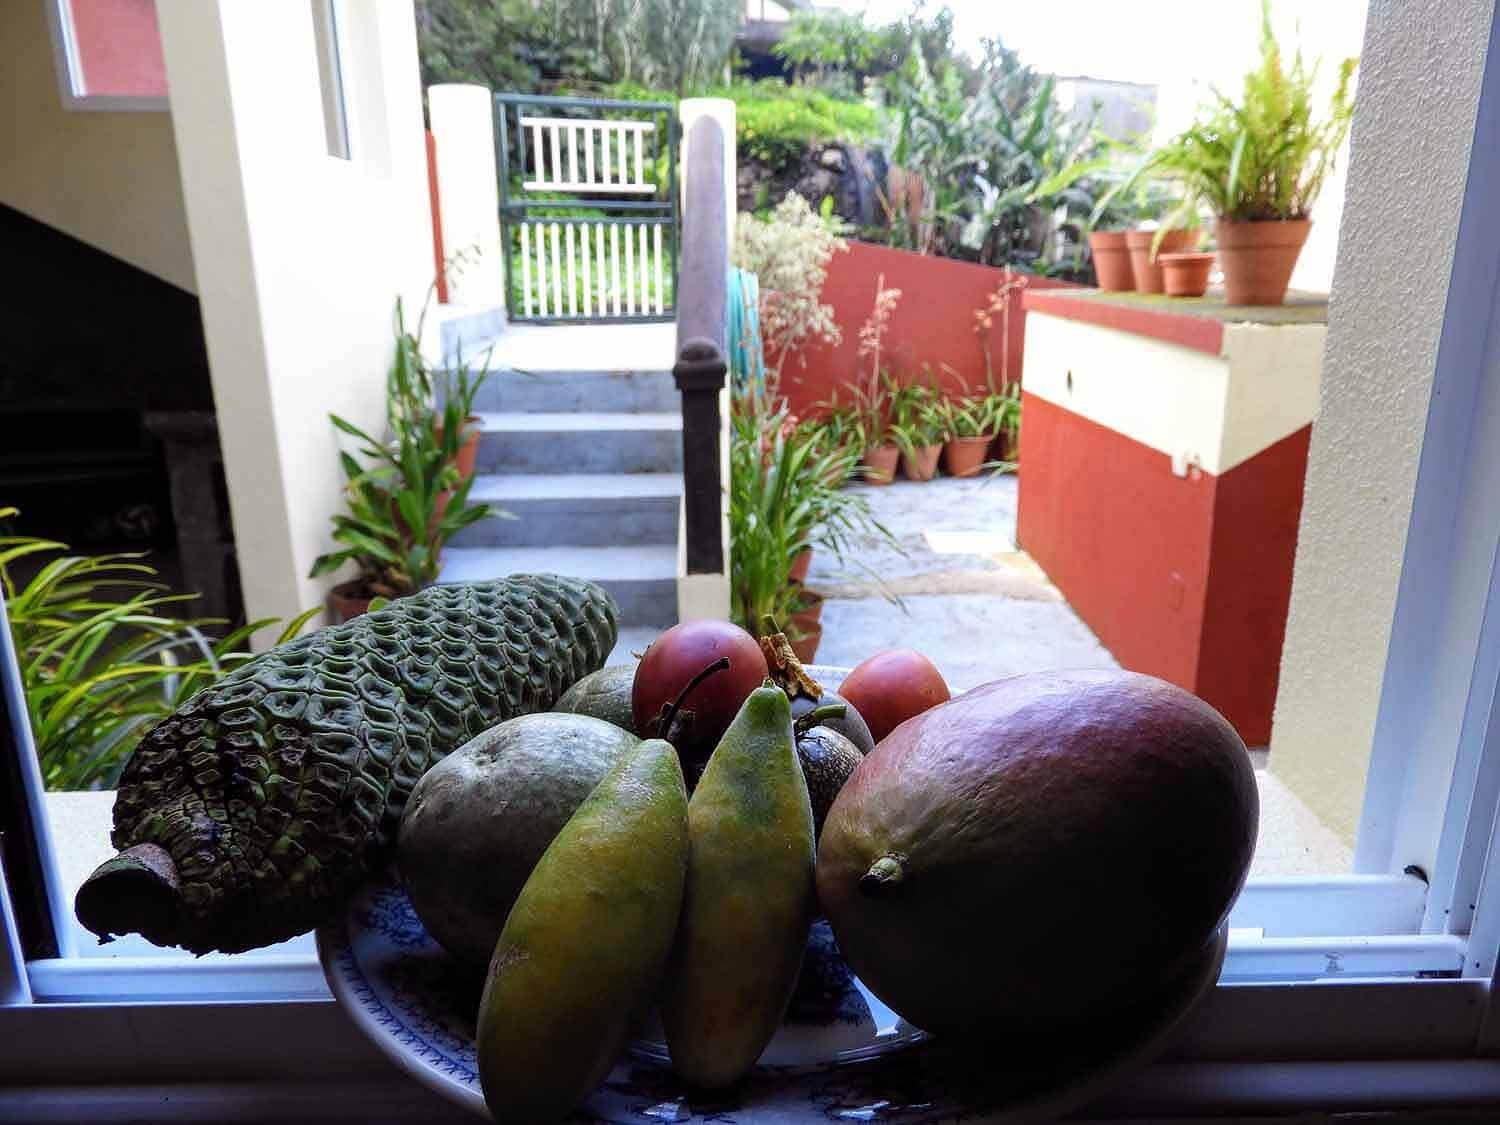 portugal-madeira-island-arco-sao-jorge-town-north-side-village-fruit-window.jpg